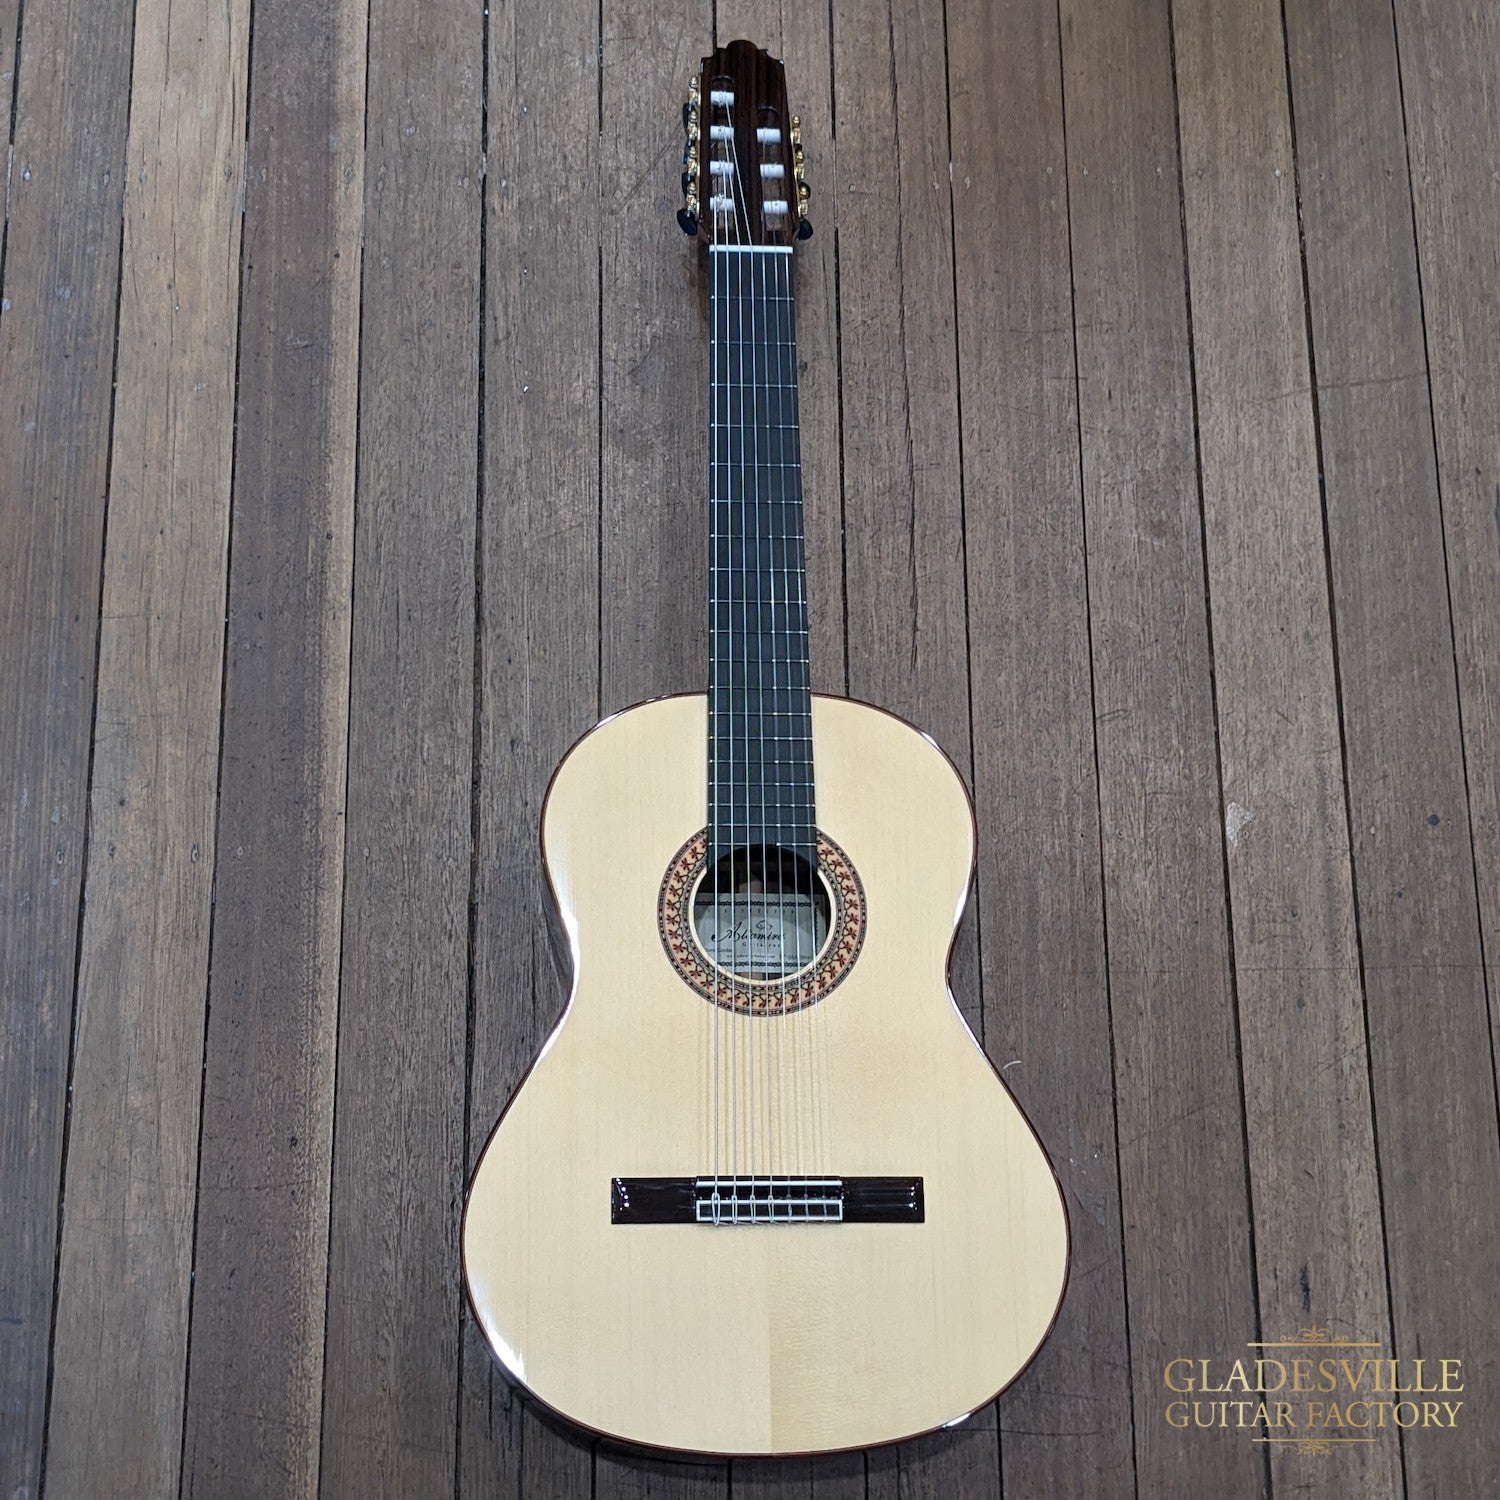 Altamira Sete Cordas 7 String Classical Guitar